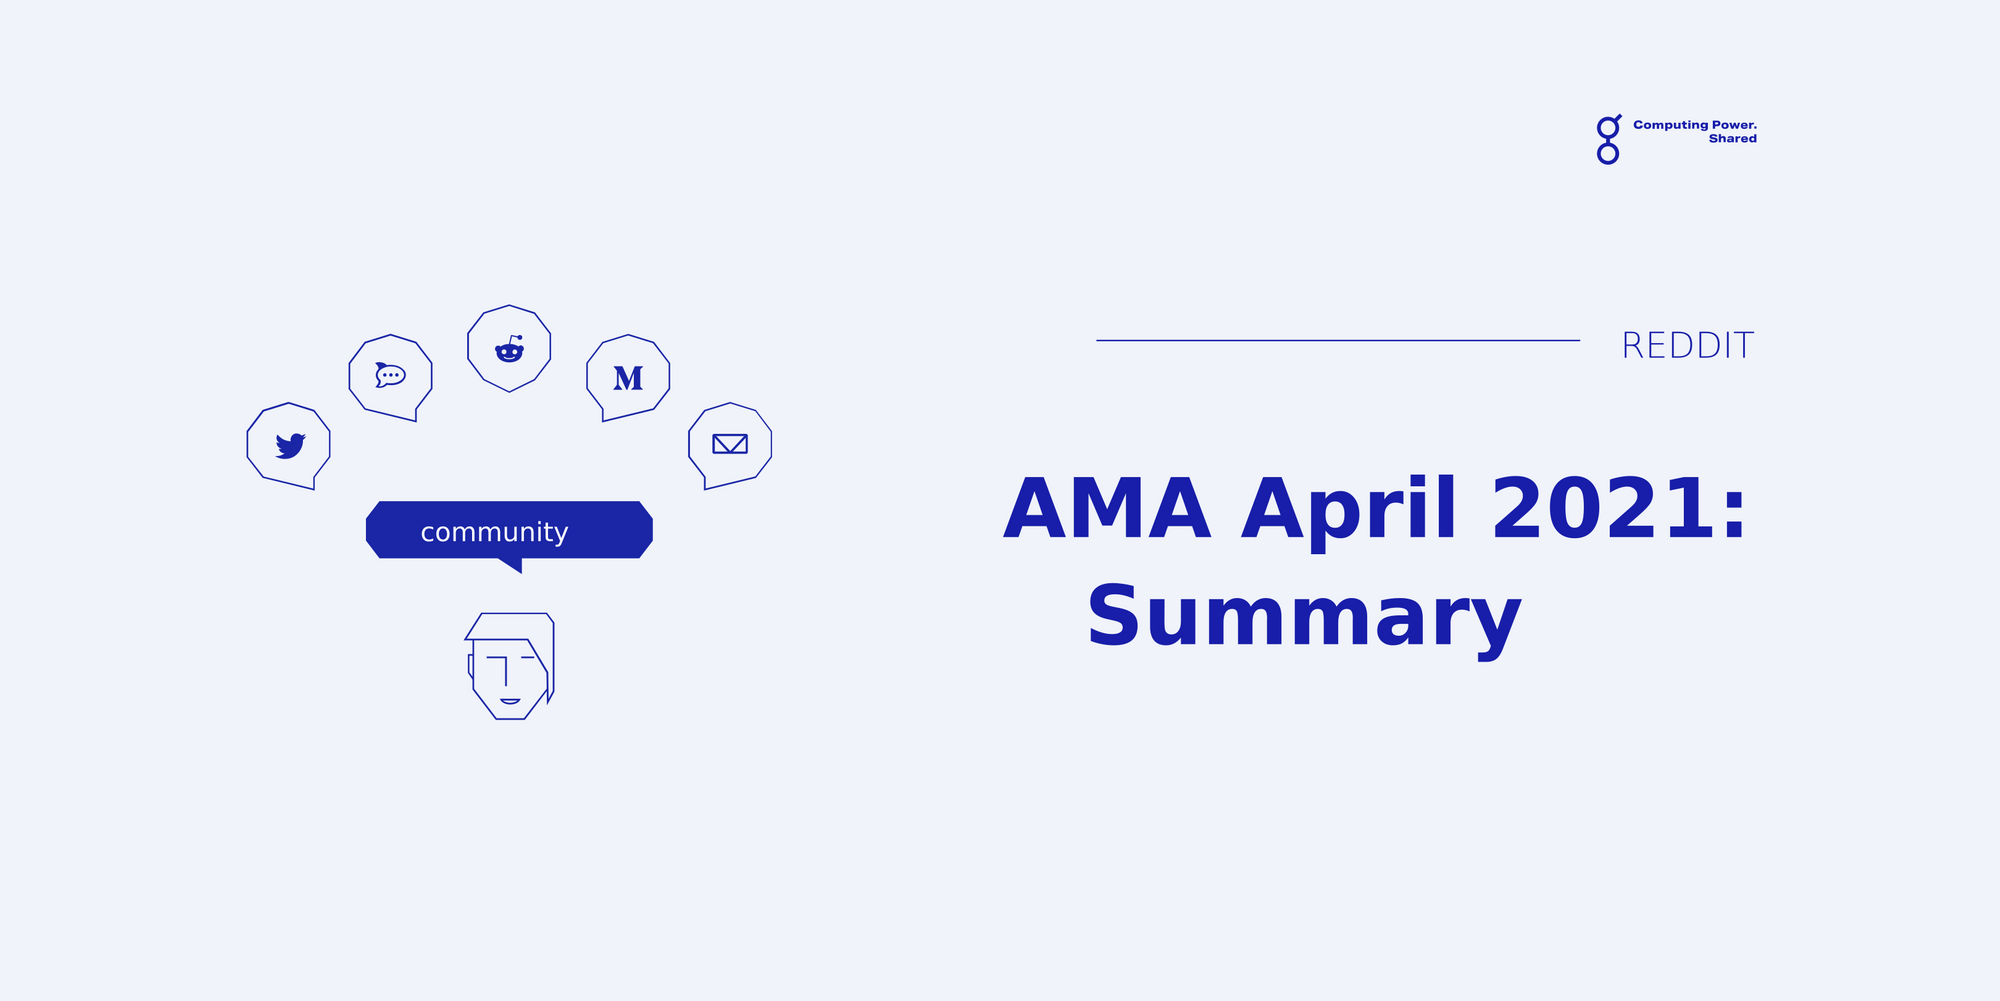 The Best Questions and Answers of the AMA, Summarized! - April 2021